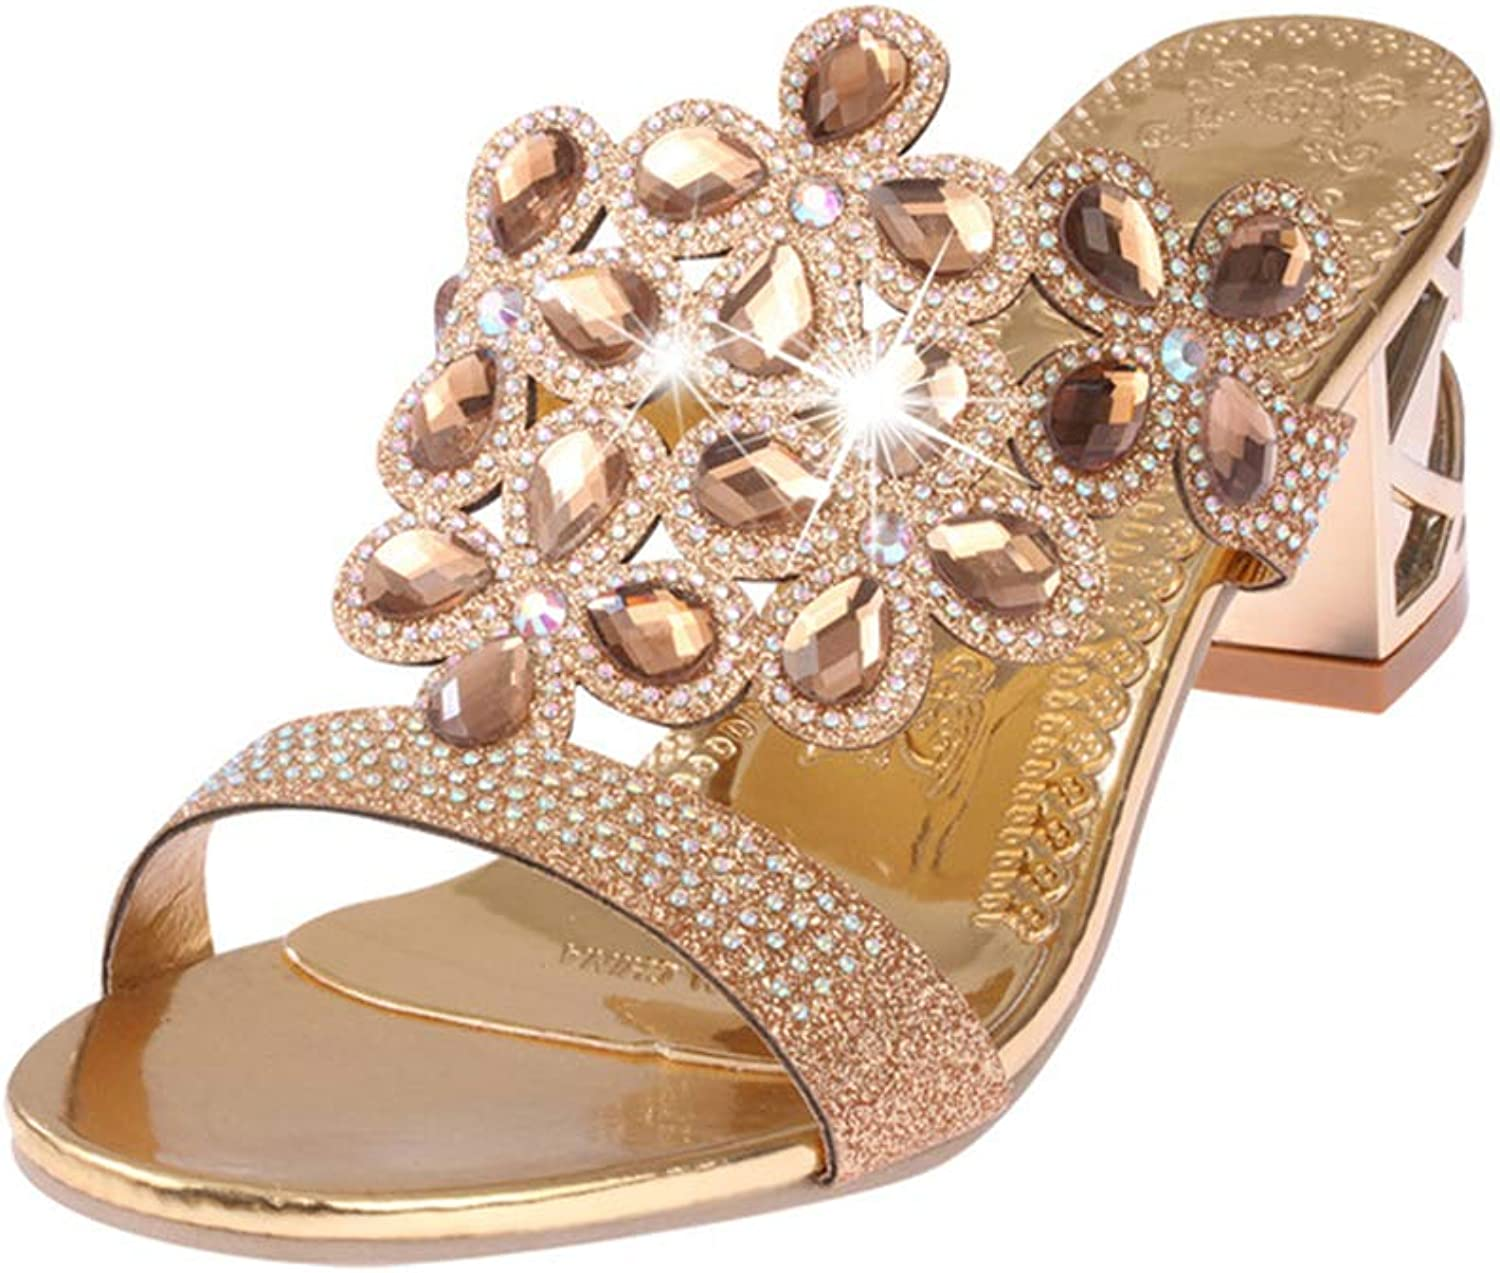 CHENSF Women Rough Heel Sandals Rhinestone Sandals